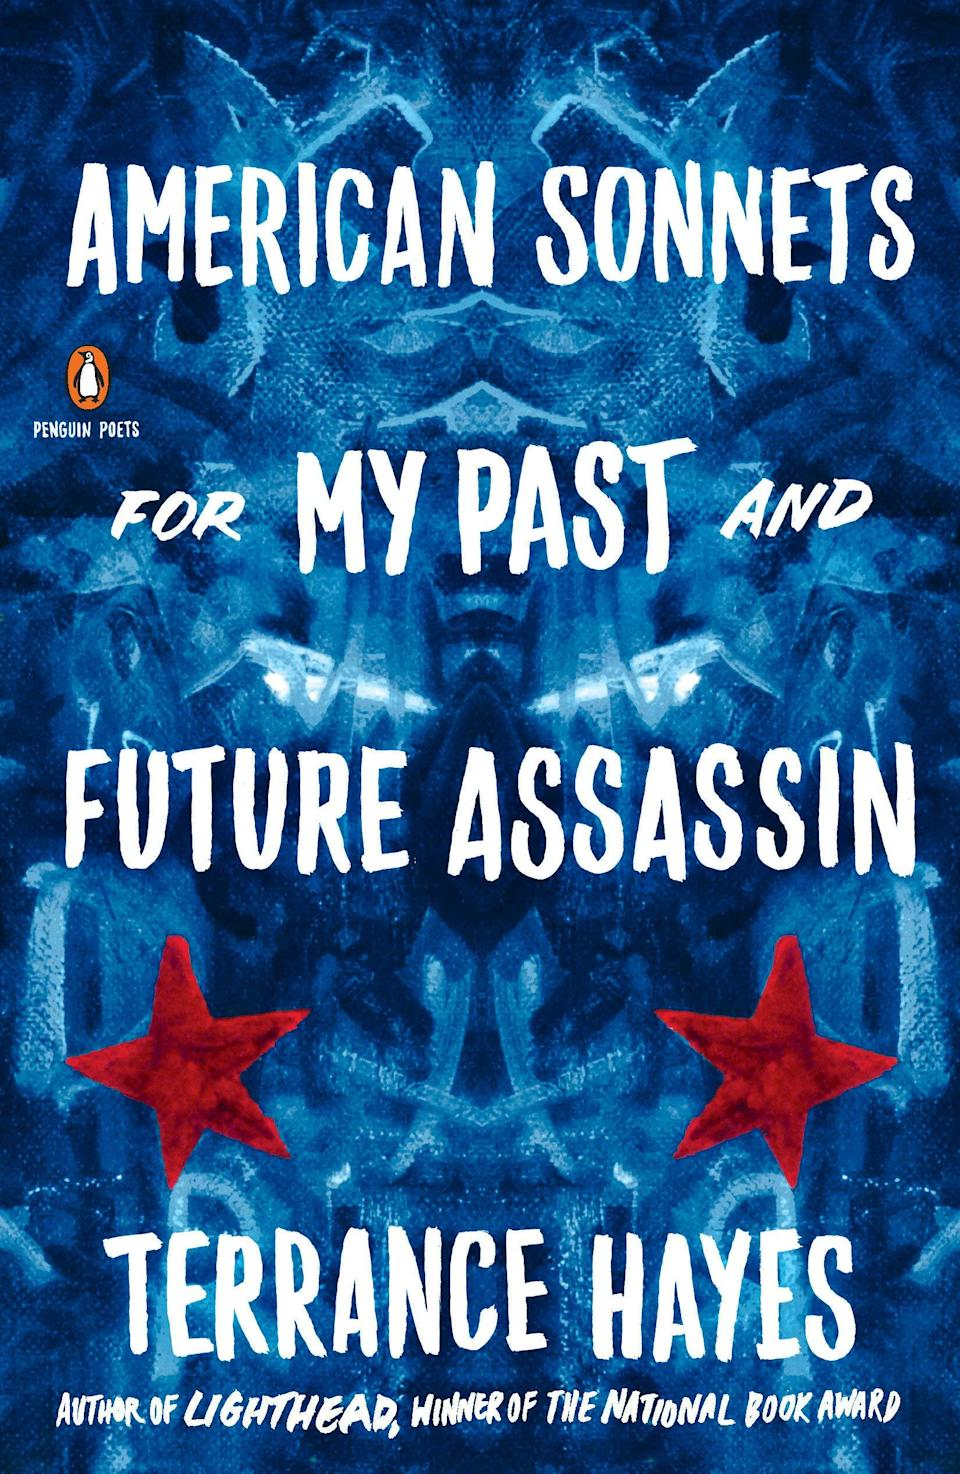 """<strong><h2>American Sonnets For My Past And Future Assassin - Terrance Hayes</h2></strong><br>Terrance Hayes reinvents the Shakespearean sonnet in this book. He sticks to the rhyme scheme and iambic pentameter but details the reality of being a black man in modern America. It is not a light read, but very powerful.<br><br><em>Shop</em> <a href=""""https://amzn.to/2Hmi7ja"""" rel=""""nofollow noopener"""" target=""""_blank"""" data-ylk=""""slk:Terrance Hayes"""" class=""""link rapid-noclick-resp""""><strong><em>Terrance Hayes</em></strong></a><br><br><br><br><strong>Penguin Books</strong> American Sonnets for My Past and Future Assassin (Penguin Poets), $, available at <a href=""""https://amzn.to/37uyF3z"""" rel=""""nofollow noopener"""" target=""""_blank"""" data-ylk=""""slk:Amazon"""" class=""""link rapid-noclick-resp"""">Amazon</a>"""